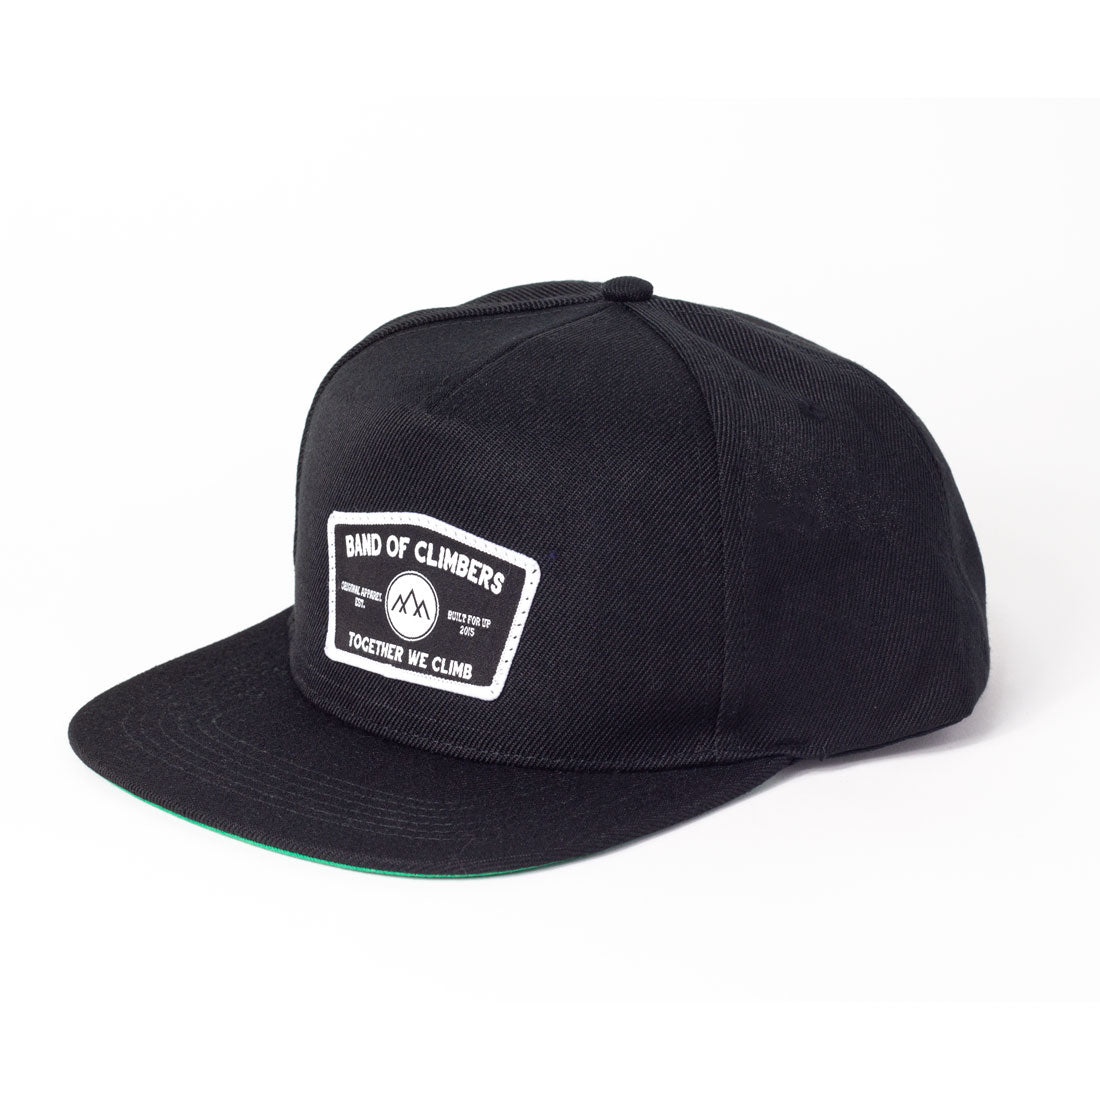 ICON 5 Panel Cap - Black